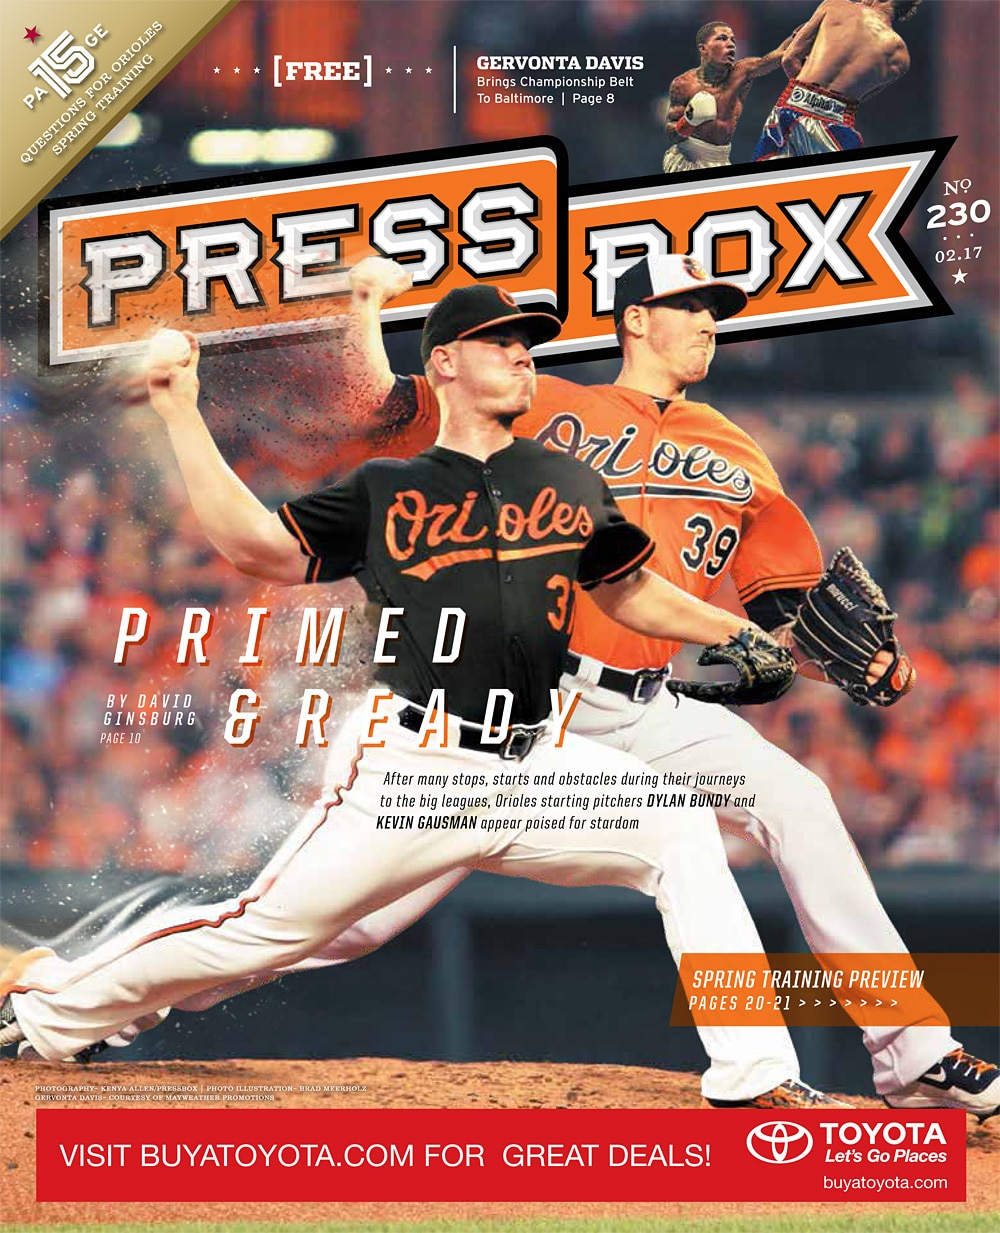 Issue-230-pressbox-february-2017-cover